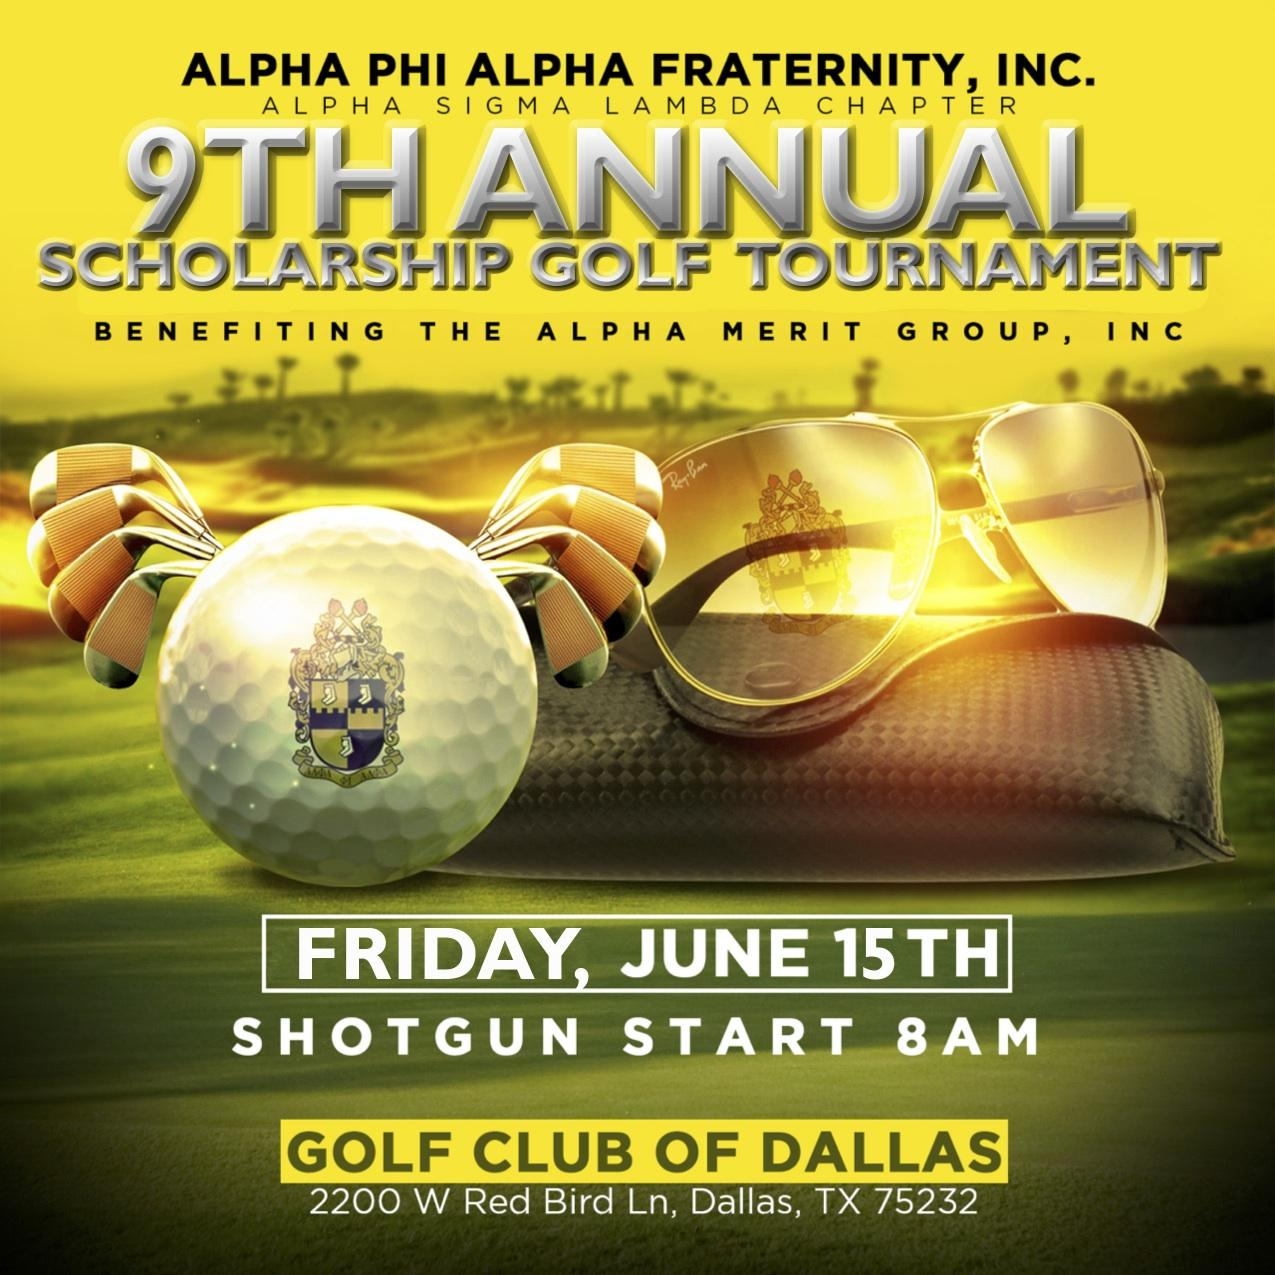 9th Annual Golf Tournament presented by Alpha Phi Alpha Fraternity, Inc. Alpha Sigma Lambda Chapter